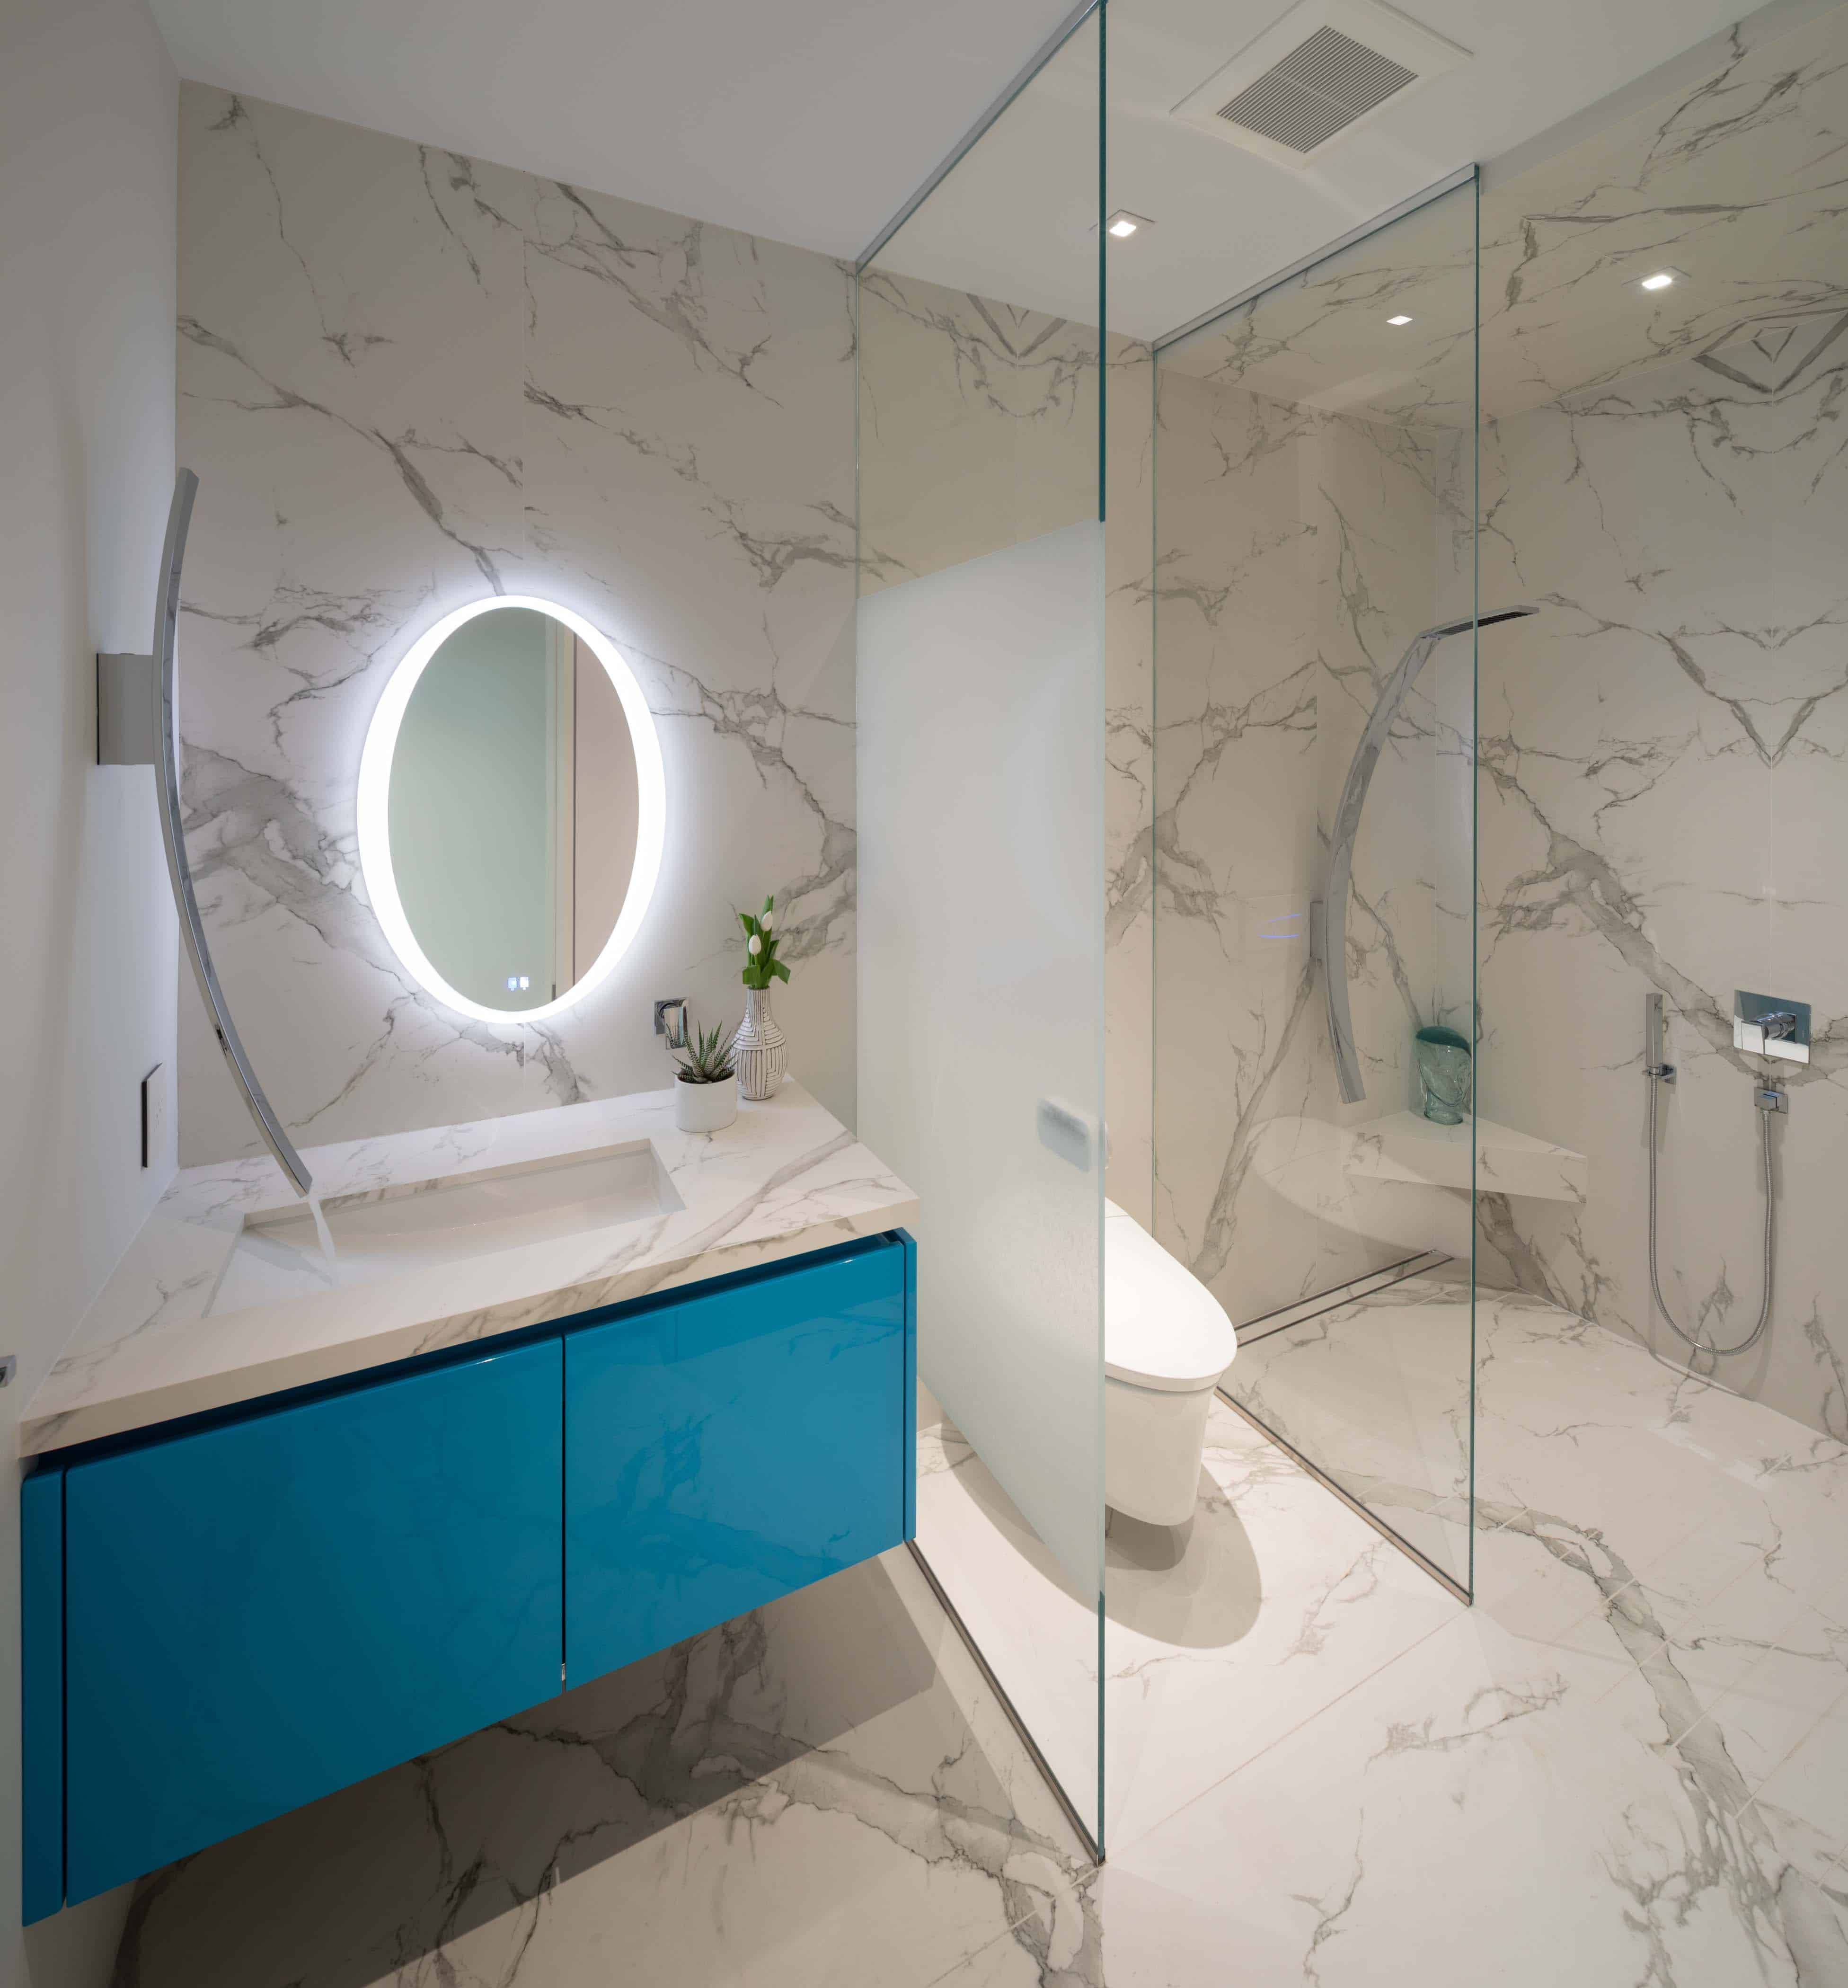 standout turquoise gloss vanity with backlit mirror abuts a water closet and shower with partially sandblasted glass walls in an eggersmann-designed bathroom